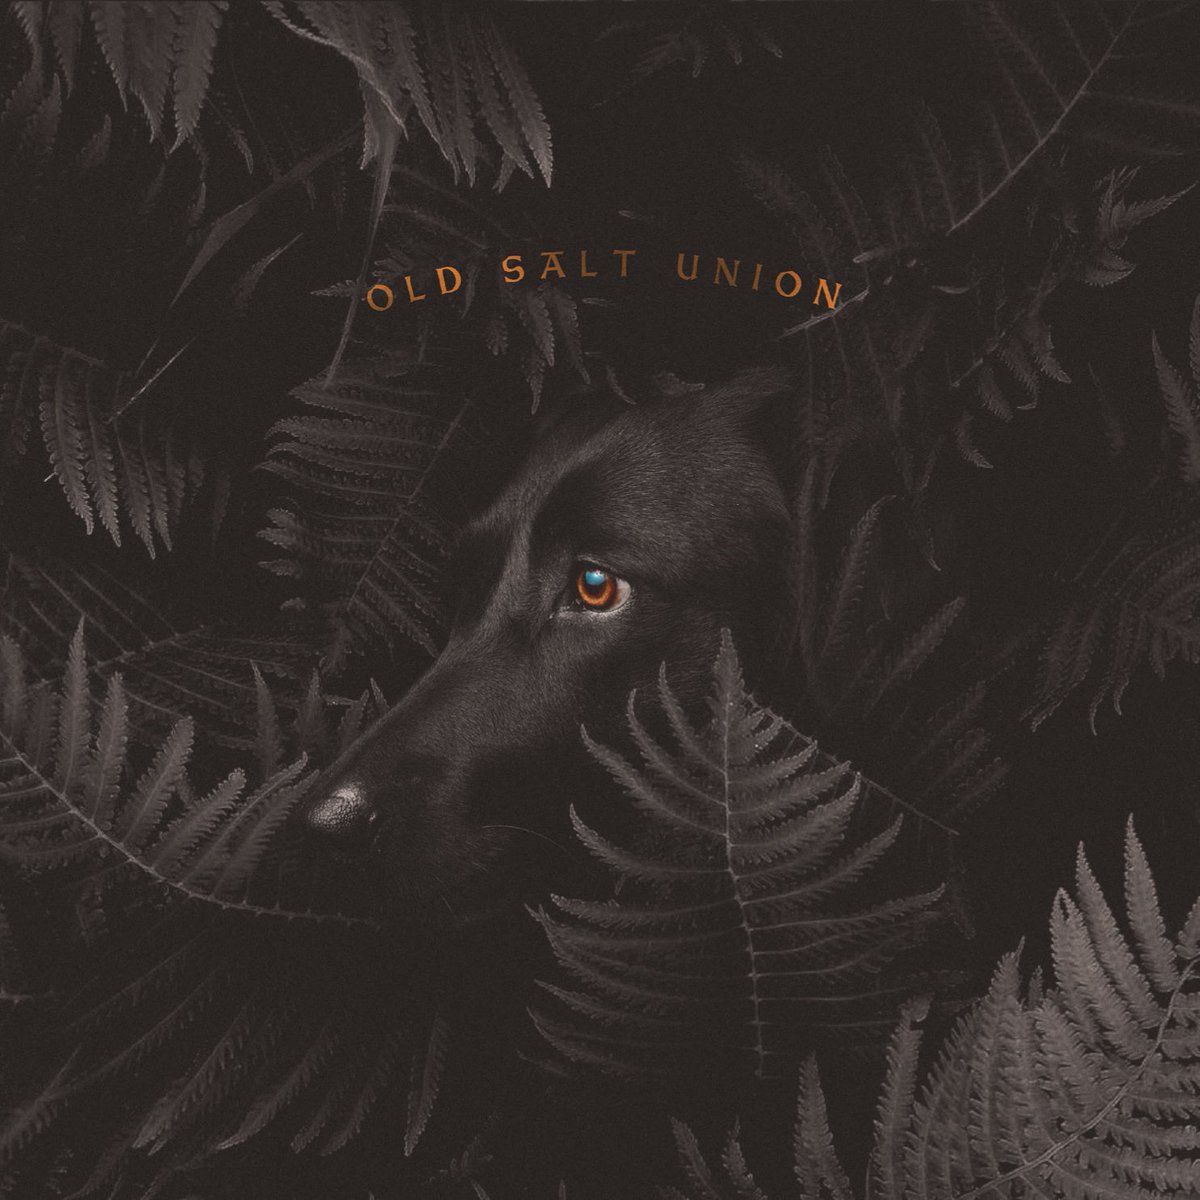 HAPPY RELEASE DAY!! We're so excited to bring this new music to y'all!! Were so proud of this record and so thankful for everyone who has supported us over the years to bring us to this moment. LISTEN: CompassRecords.lnk.to/wherethedogsdo…